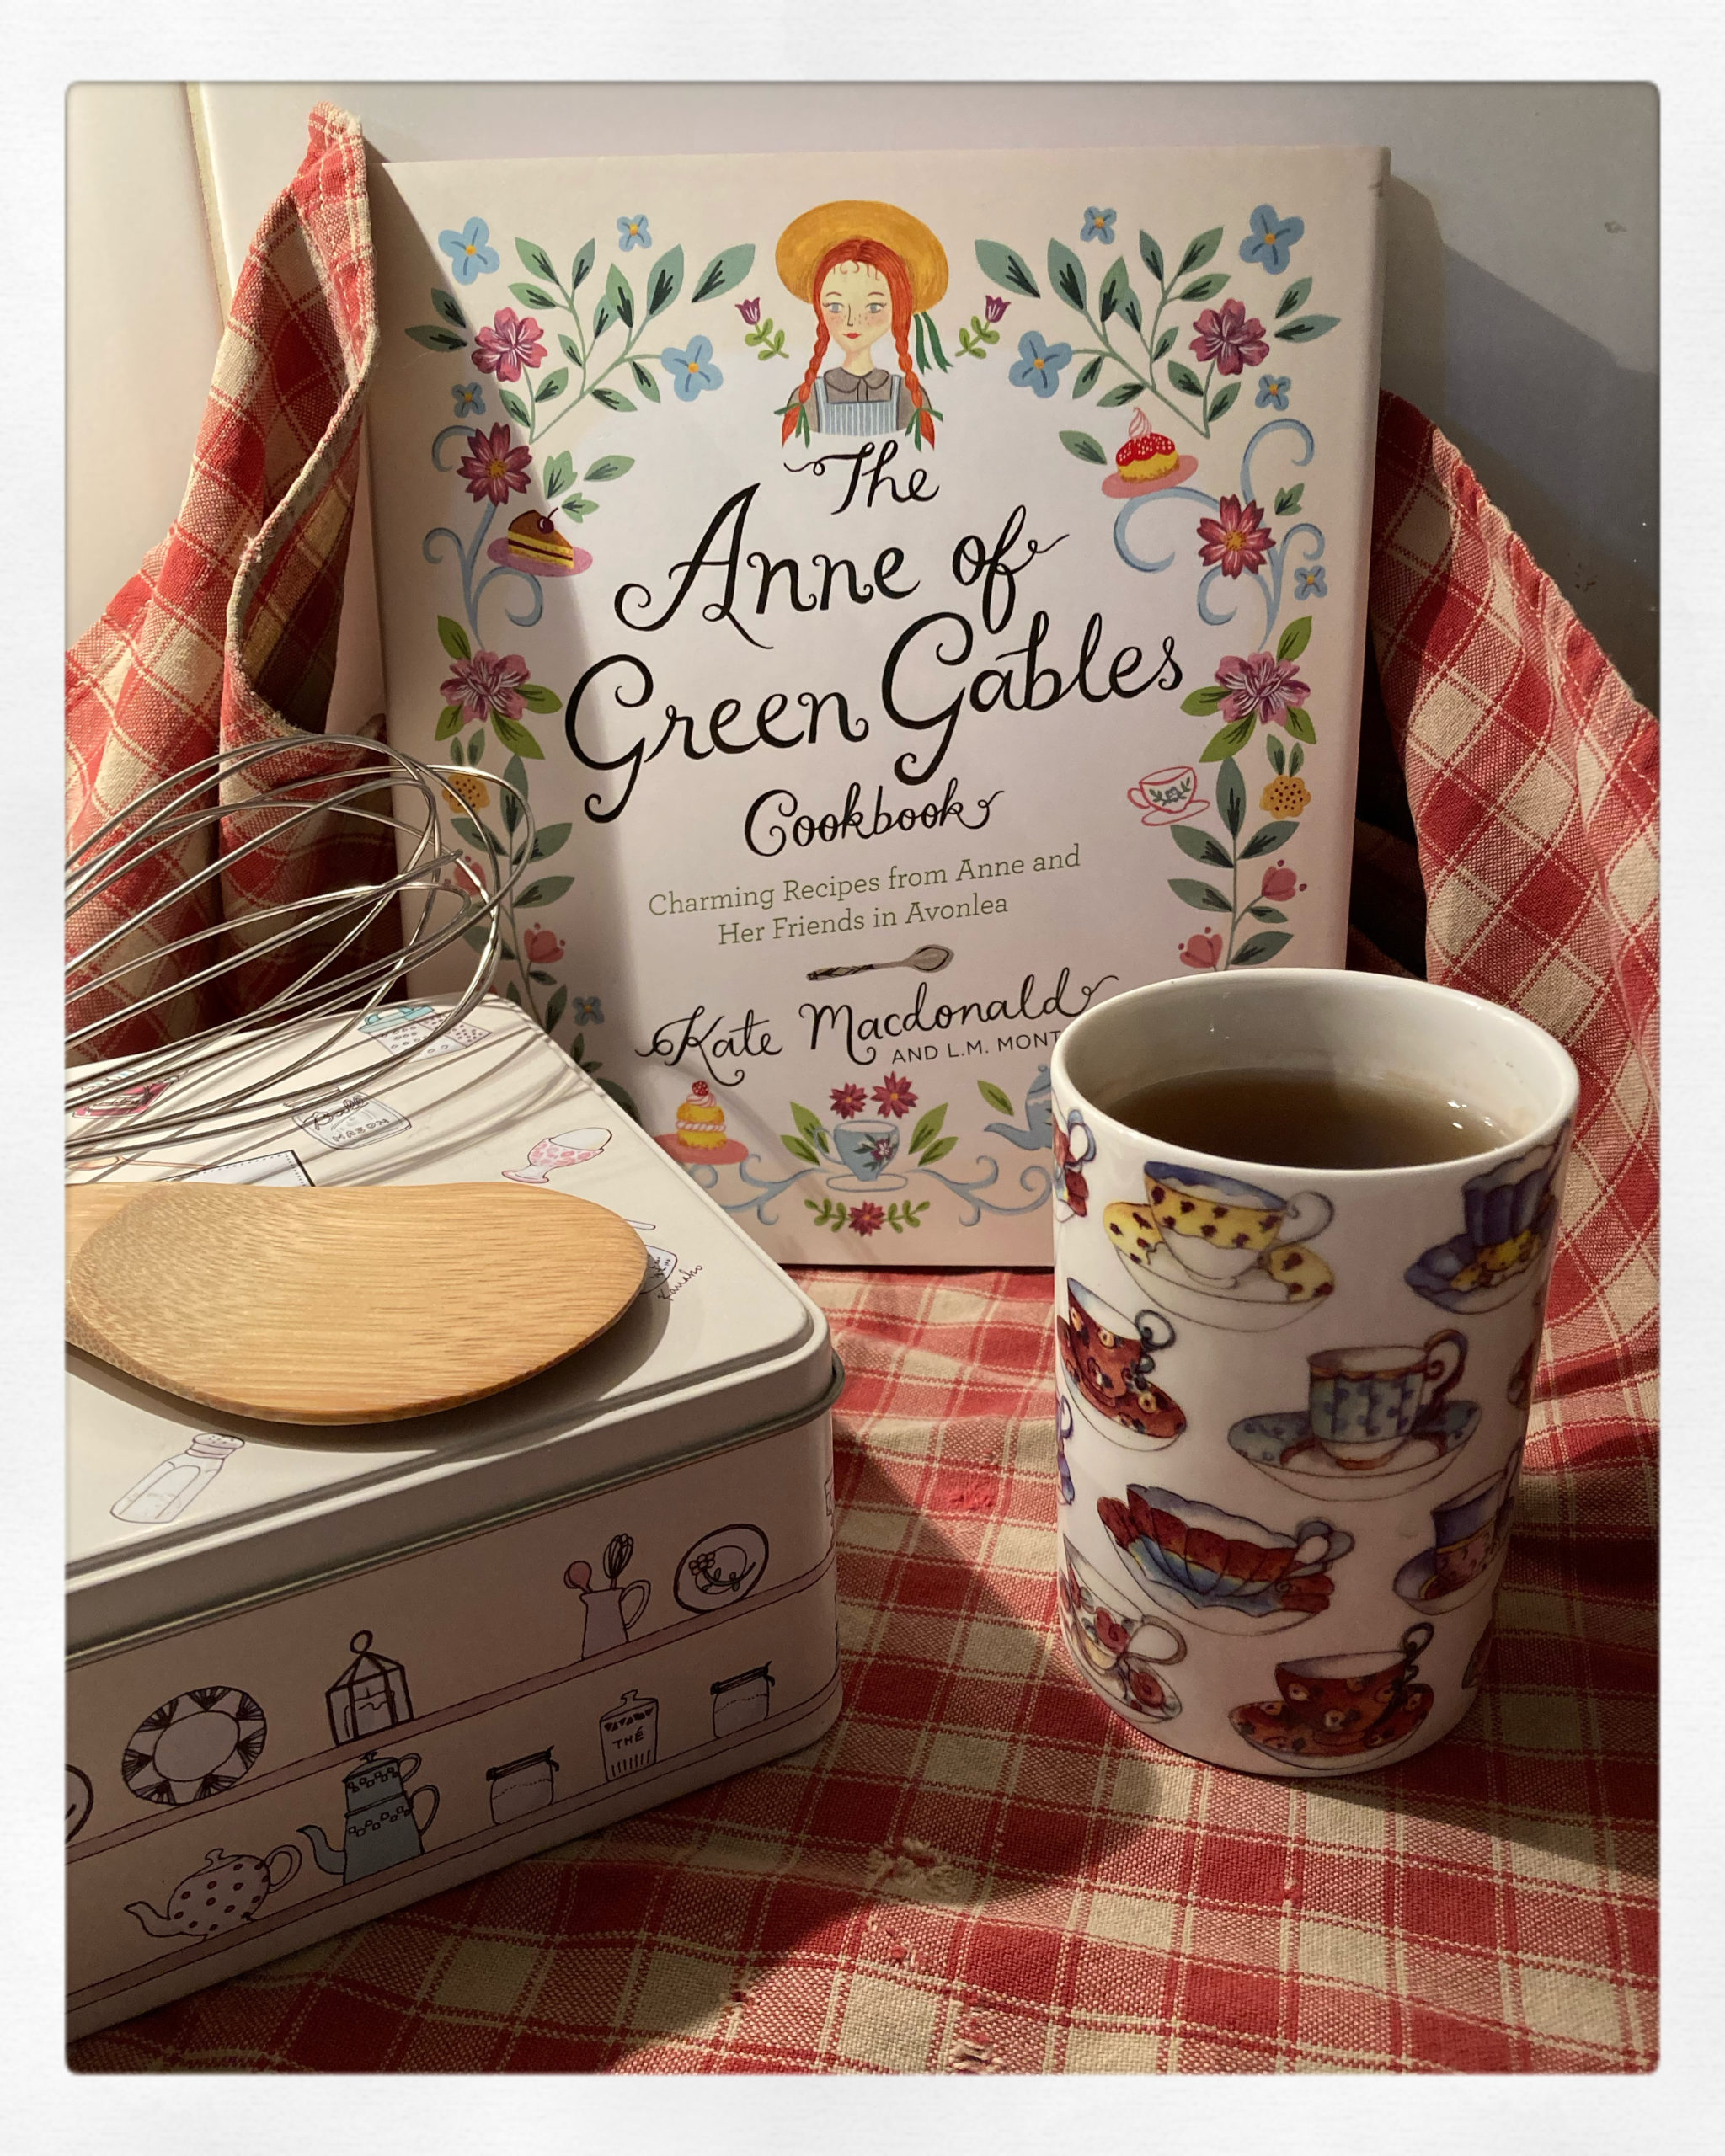 """The Anne of Green Gables Cookbook"" by Kate Macdonald and L.M.Montgomery..."